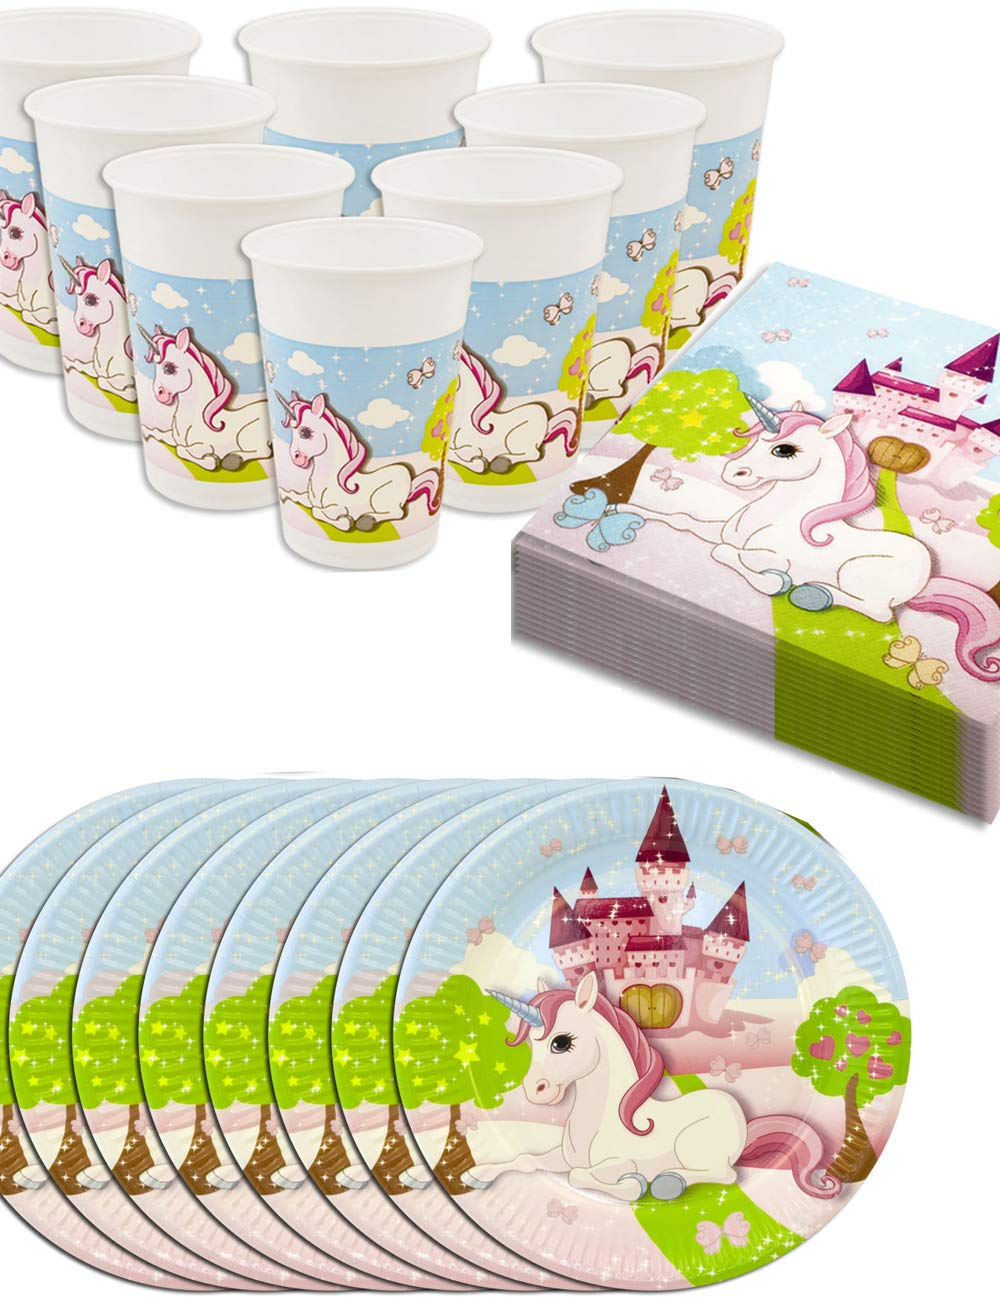 'Home Tools. UE® – Licorne Unicorn Party Set de vaisselle Castle | en carton